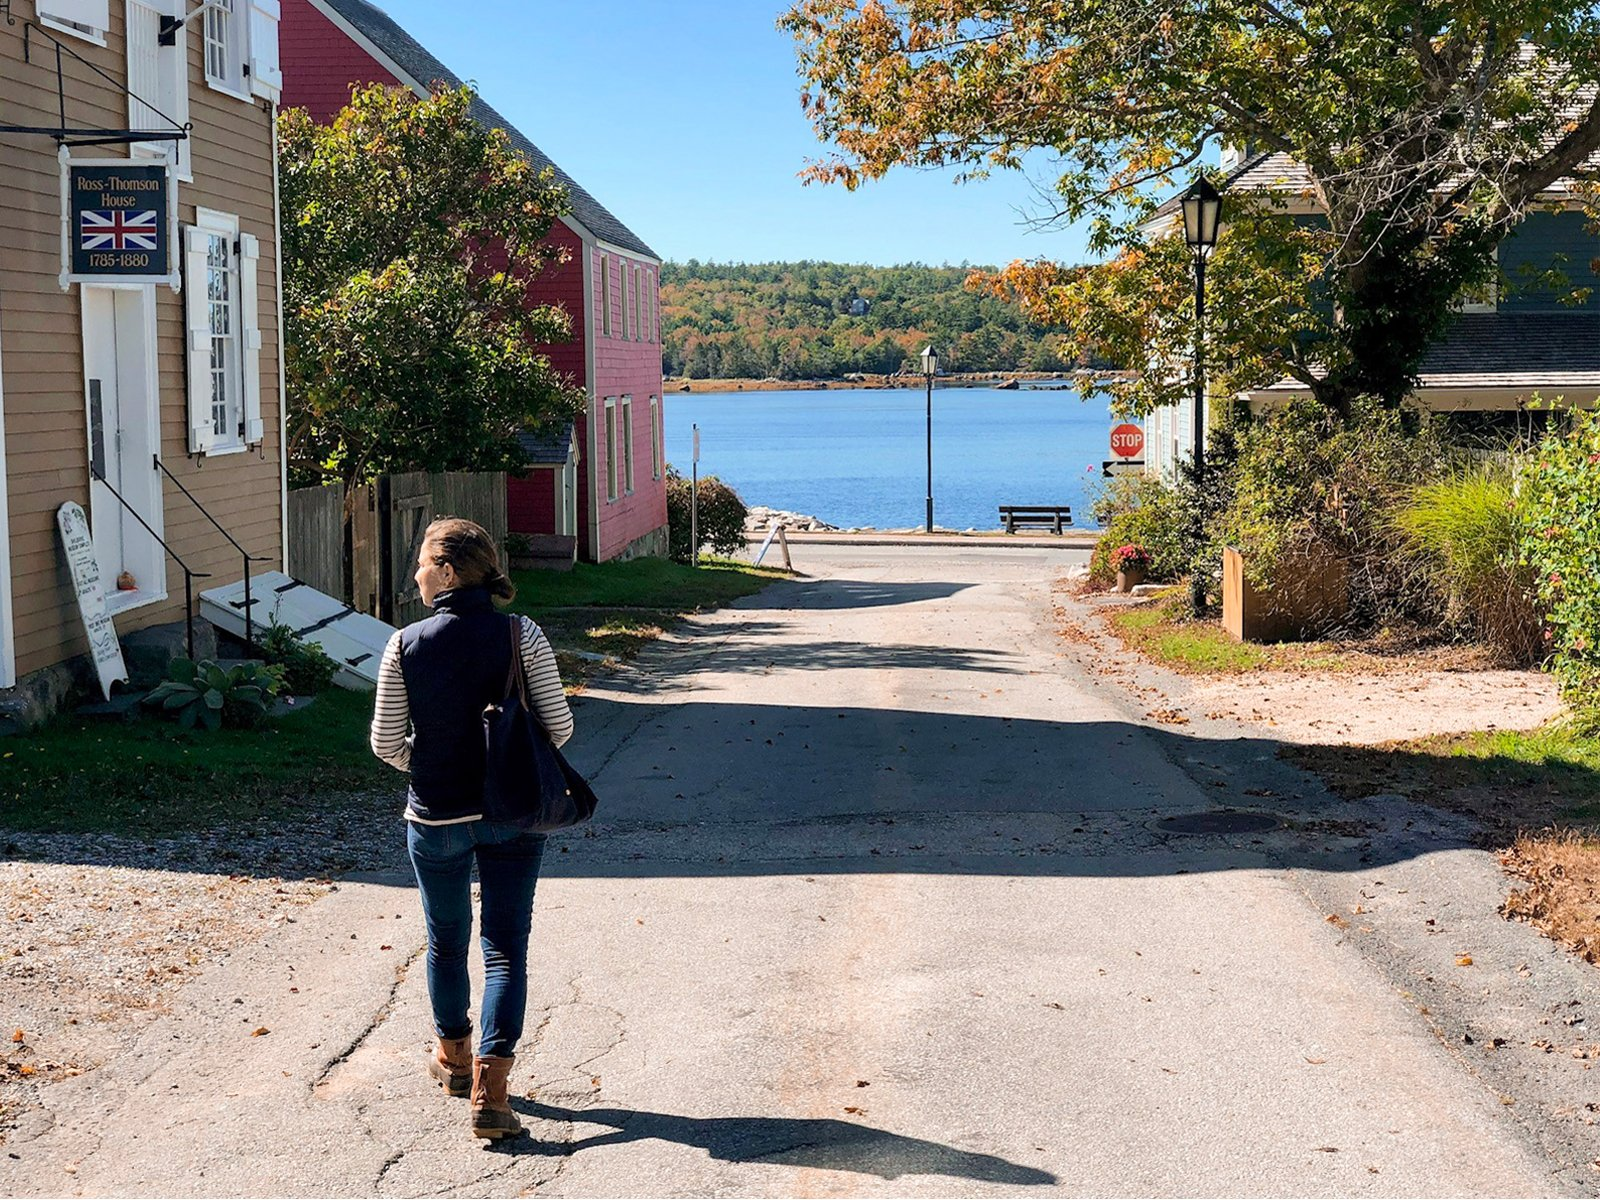 a woman walking down a road in Shelburne, Nova Scotia